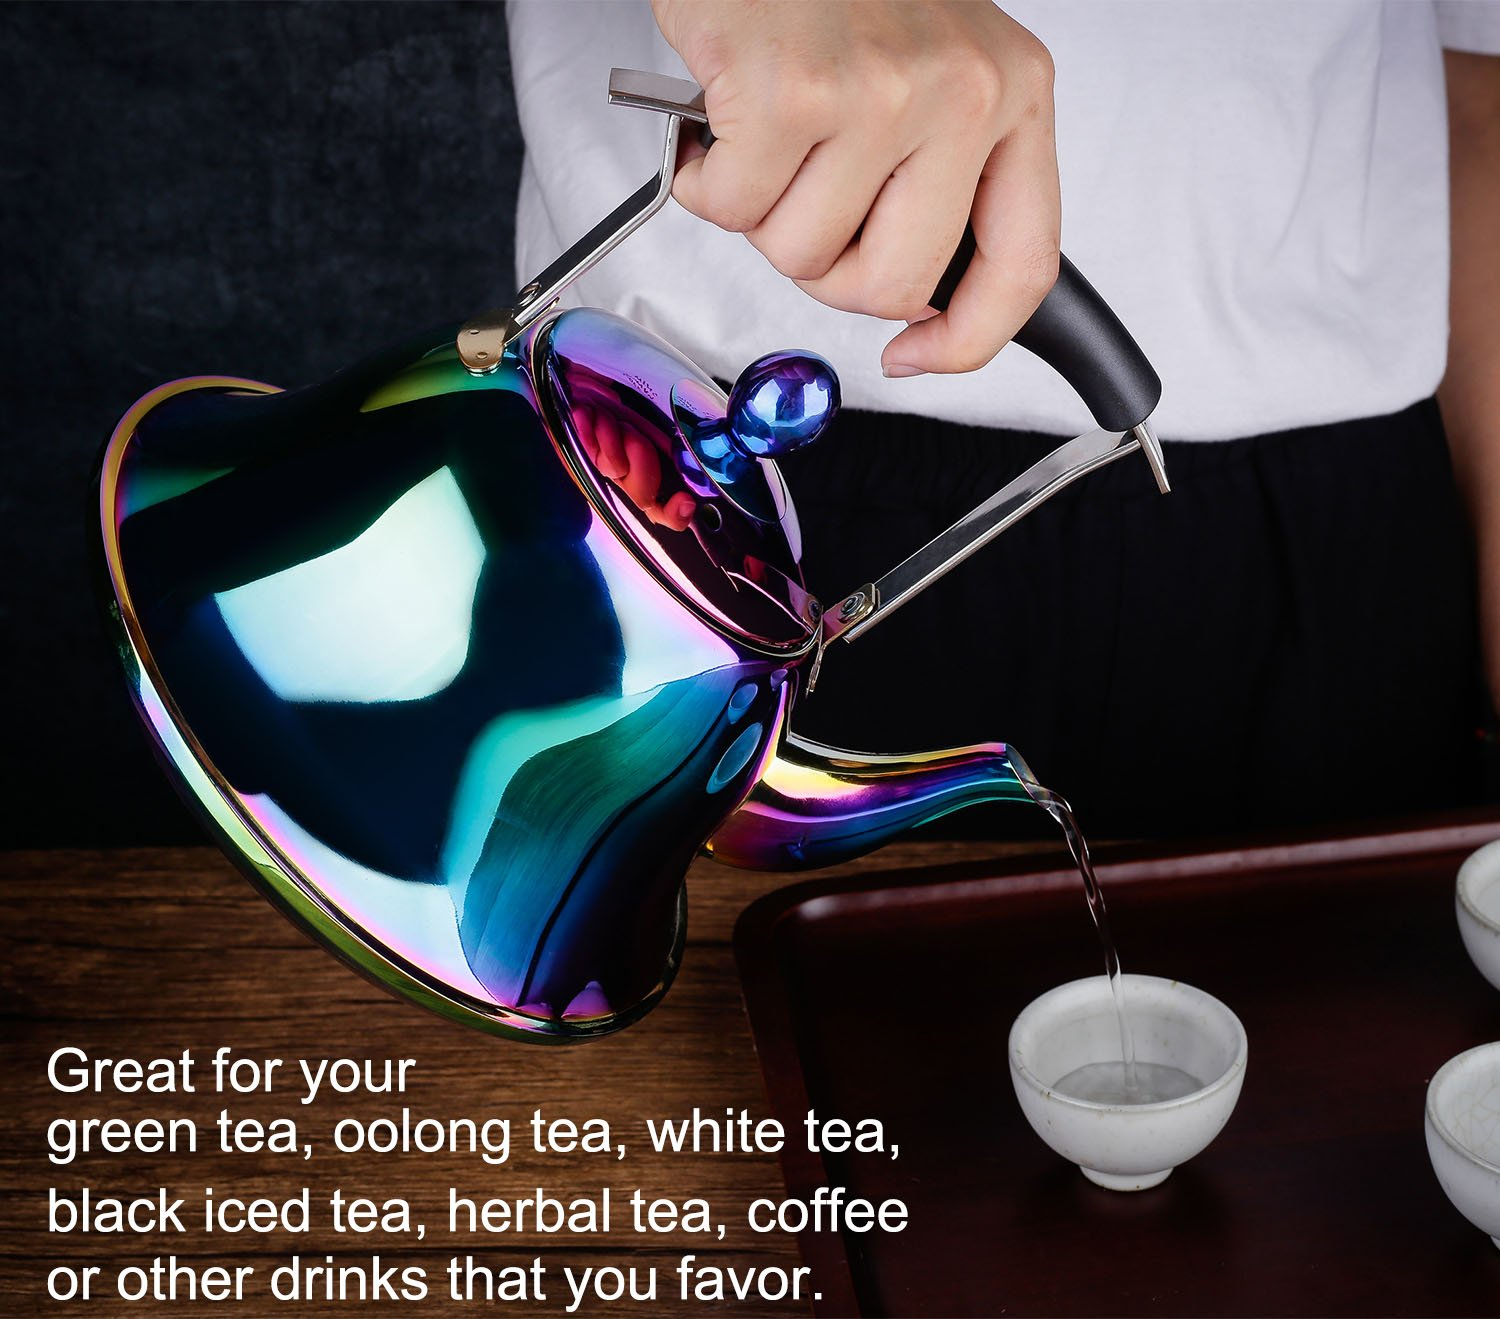 Onlycooker Whistling Tea Kettle Stainless Steel Stovetop Teakettle Sturdy Teapot for Tea Coffee Fast Boiling with Infuser Color Rainbow Mirror Finish 2 Liter 2.1 Quart